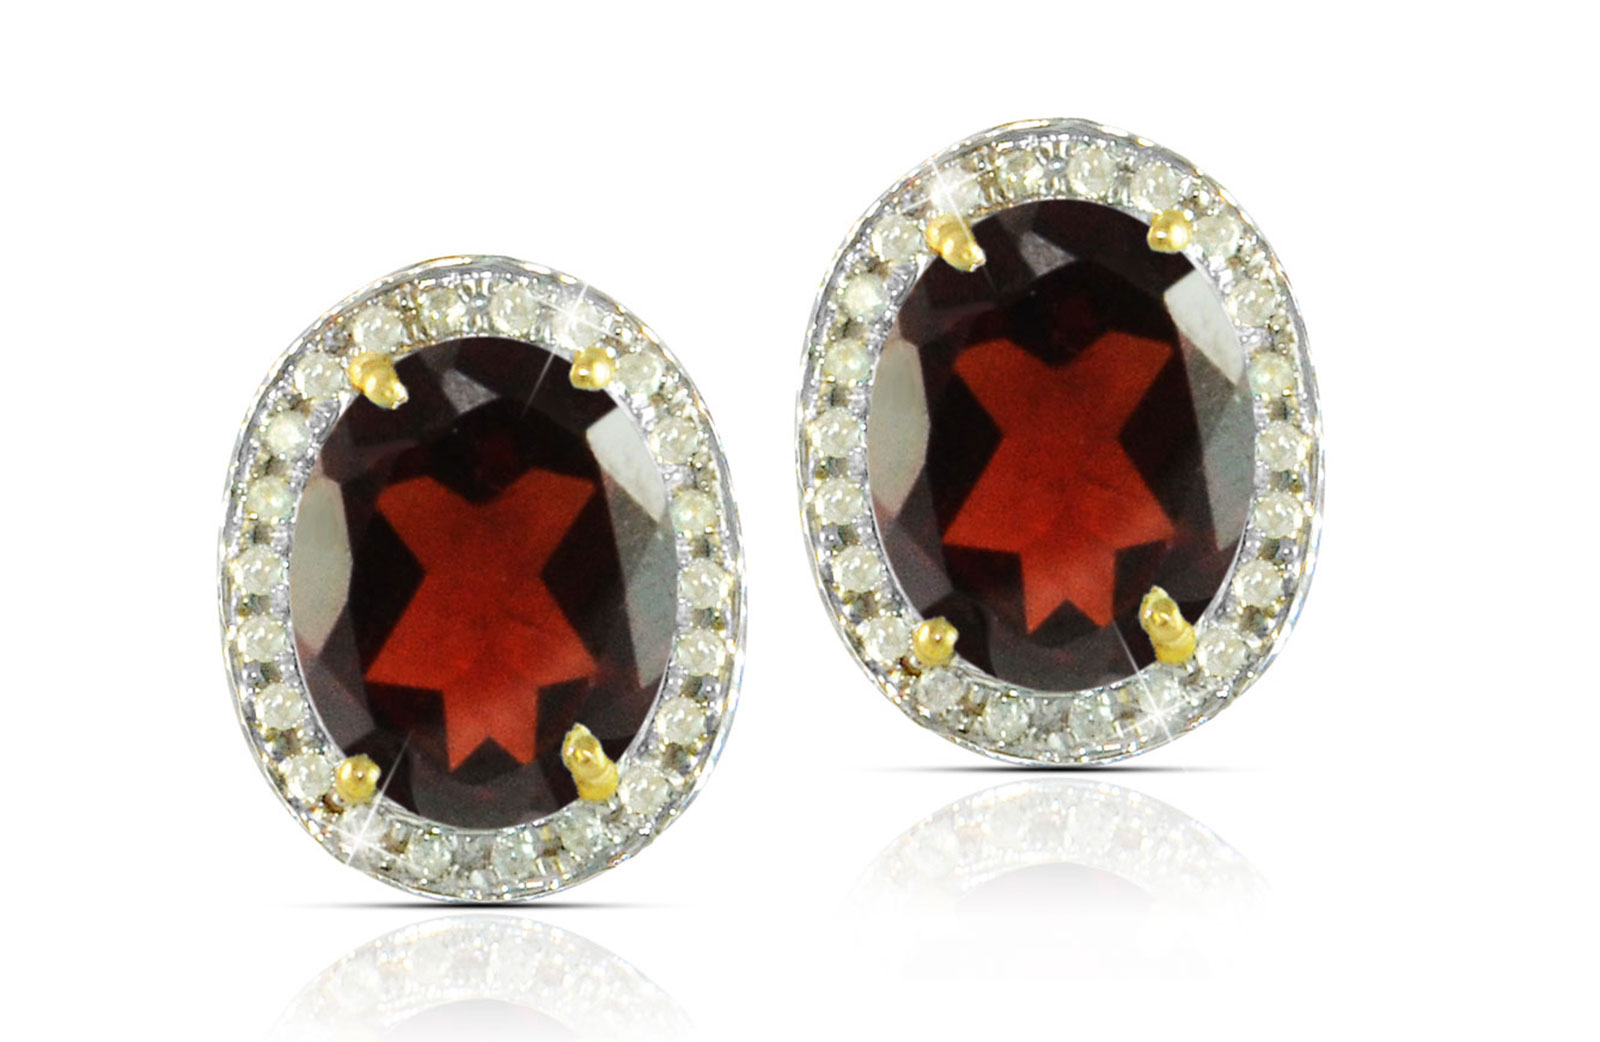 Vera Perla 18k  Gold 10mm Genuine Oval  Cut Garnet 0.24Ct Genuine Diamonds earrings